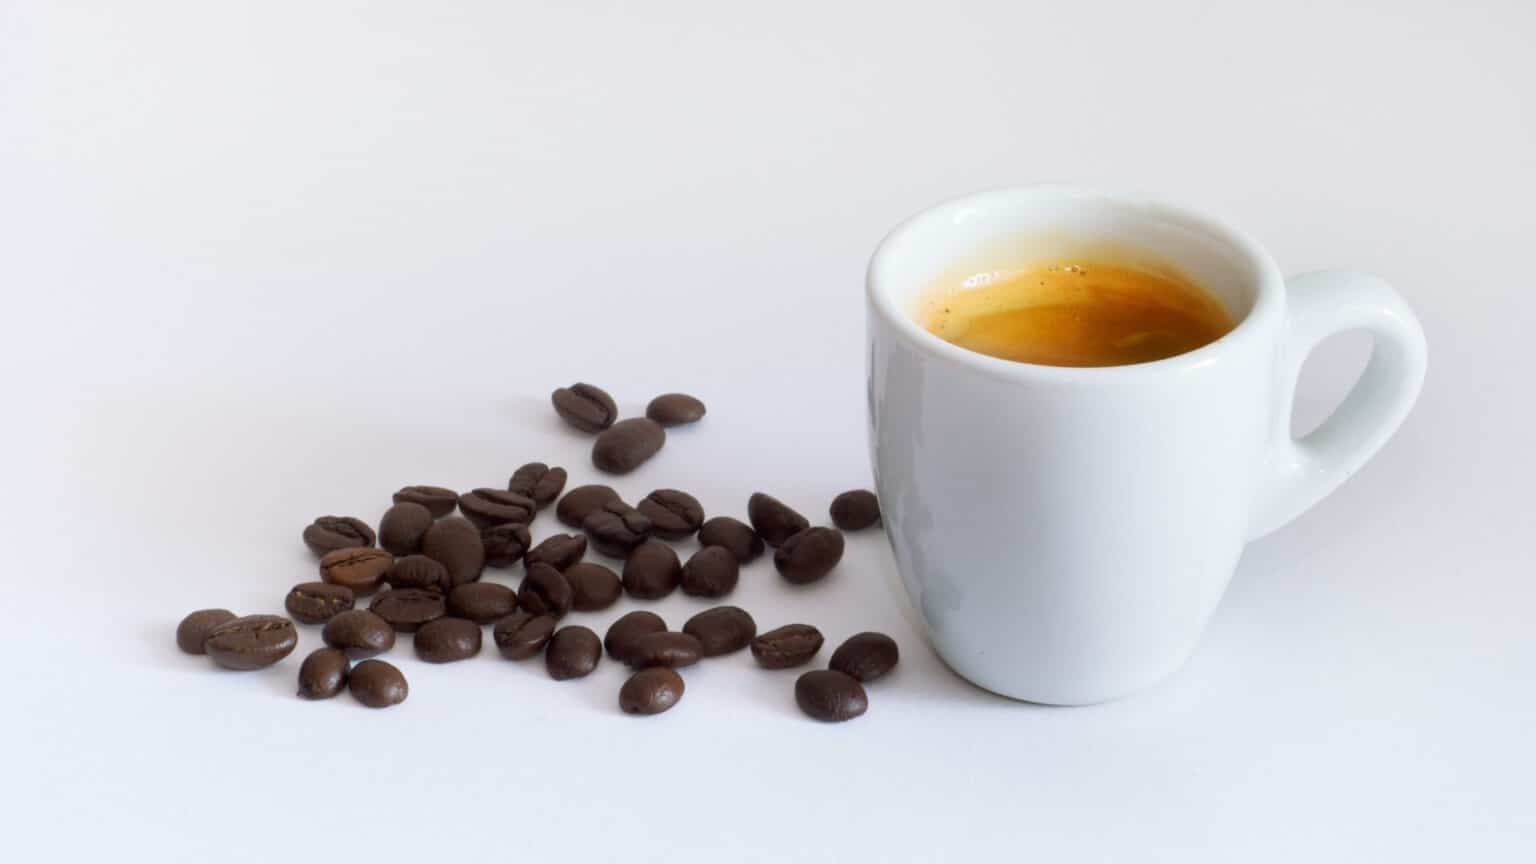 How to Choose The Right Cup to Serve Espresso